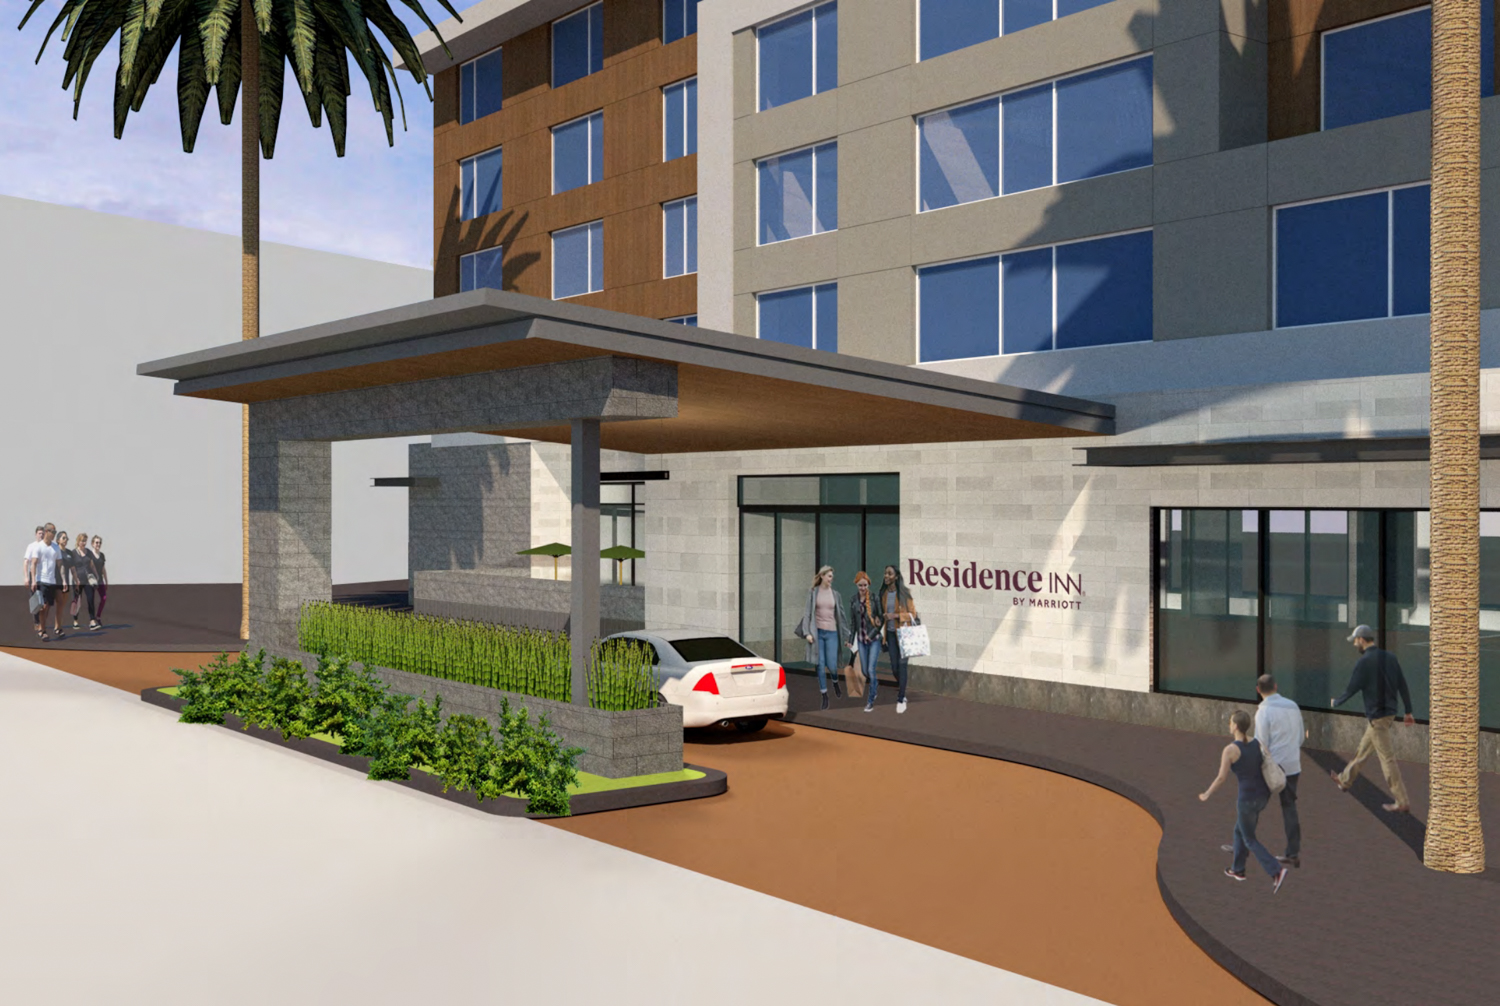 Gateway at Millbrae Station Parcel 6B Residence Inn Hotel by Marriott Porte-cochère entrance, rendering by ACRM